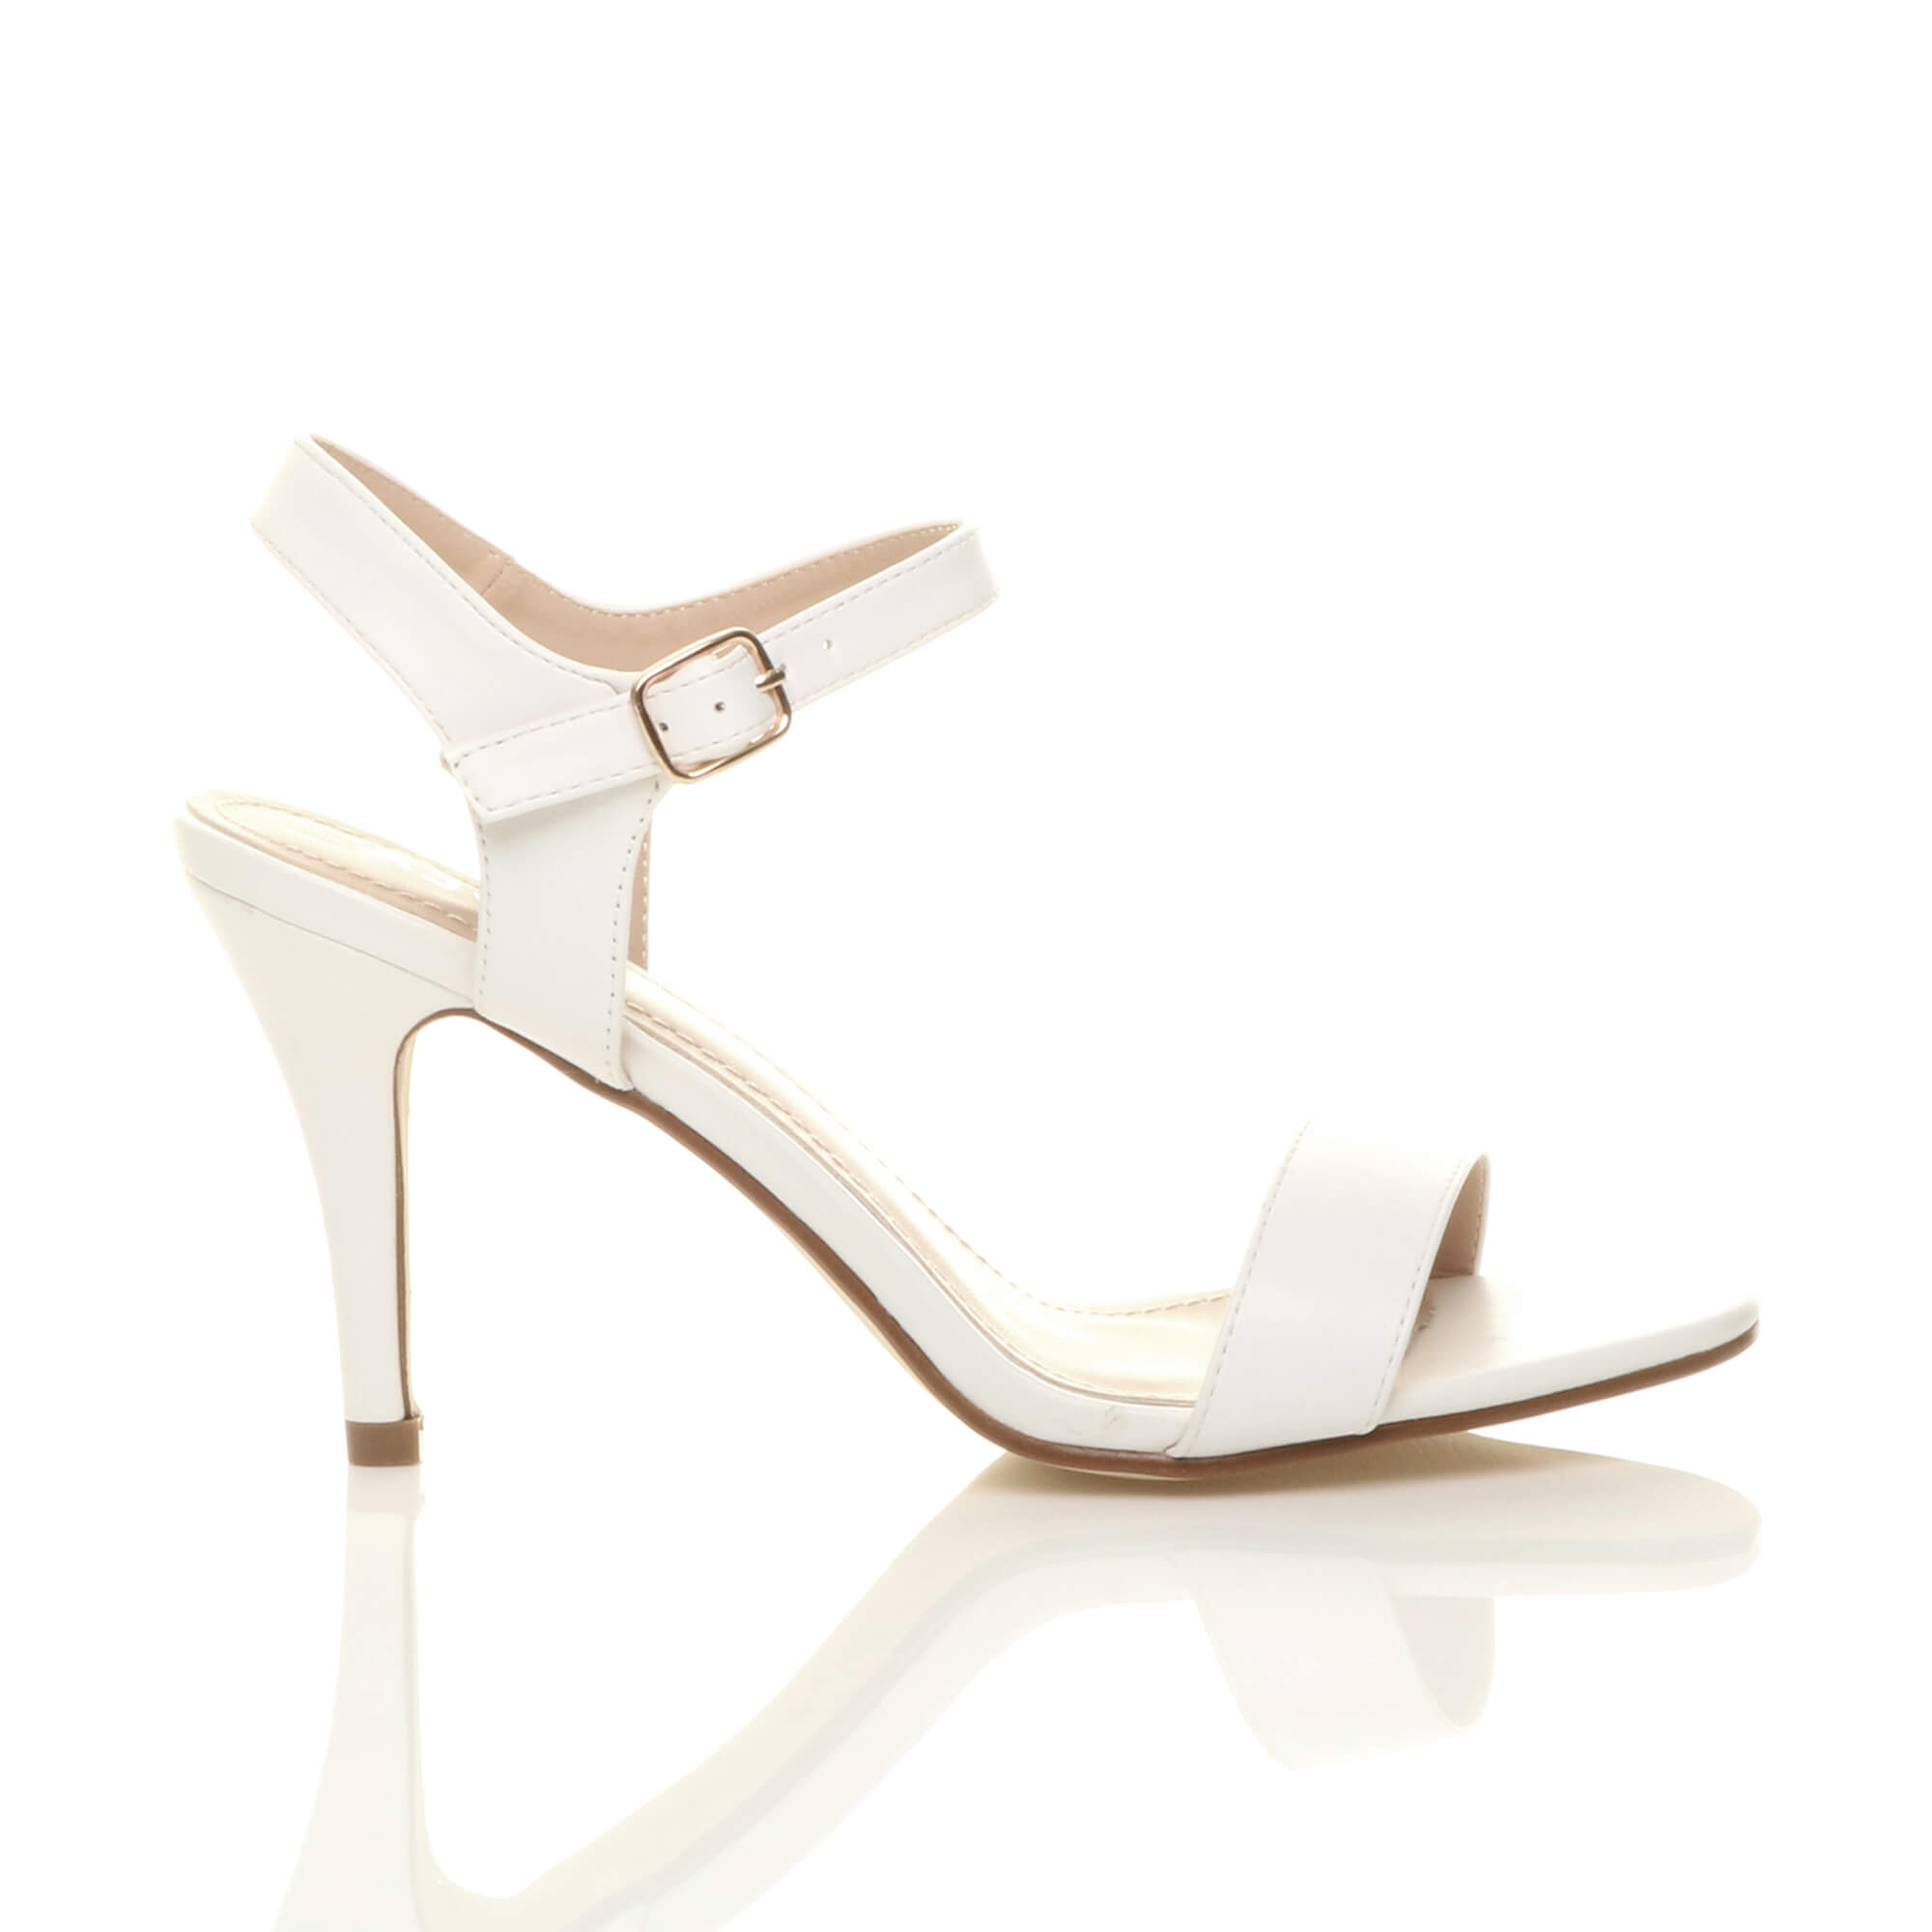 WOMENS-LADIES-HIGH-HEEL-BUCKLE-STRAPPY-BASIC-BARELY-THERE-SANDALS-SHOES-SIZE thumbnail 143